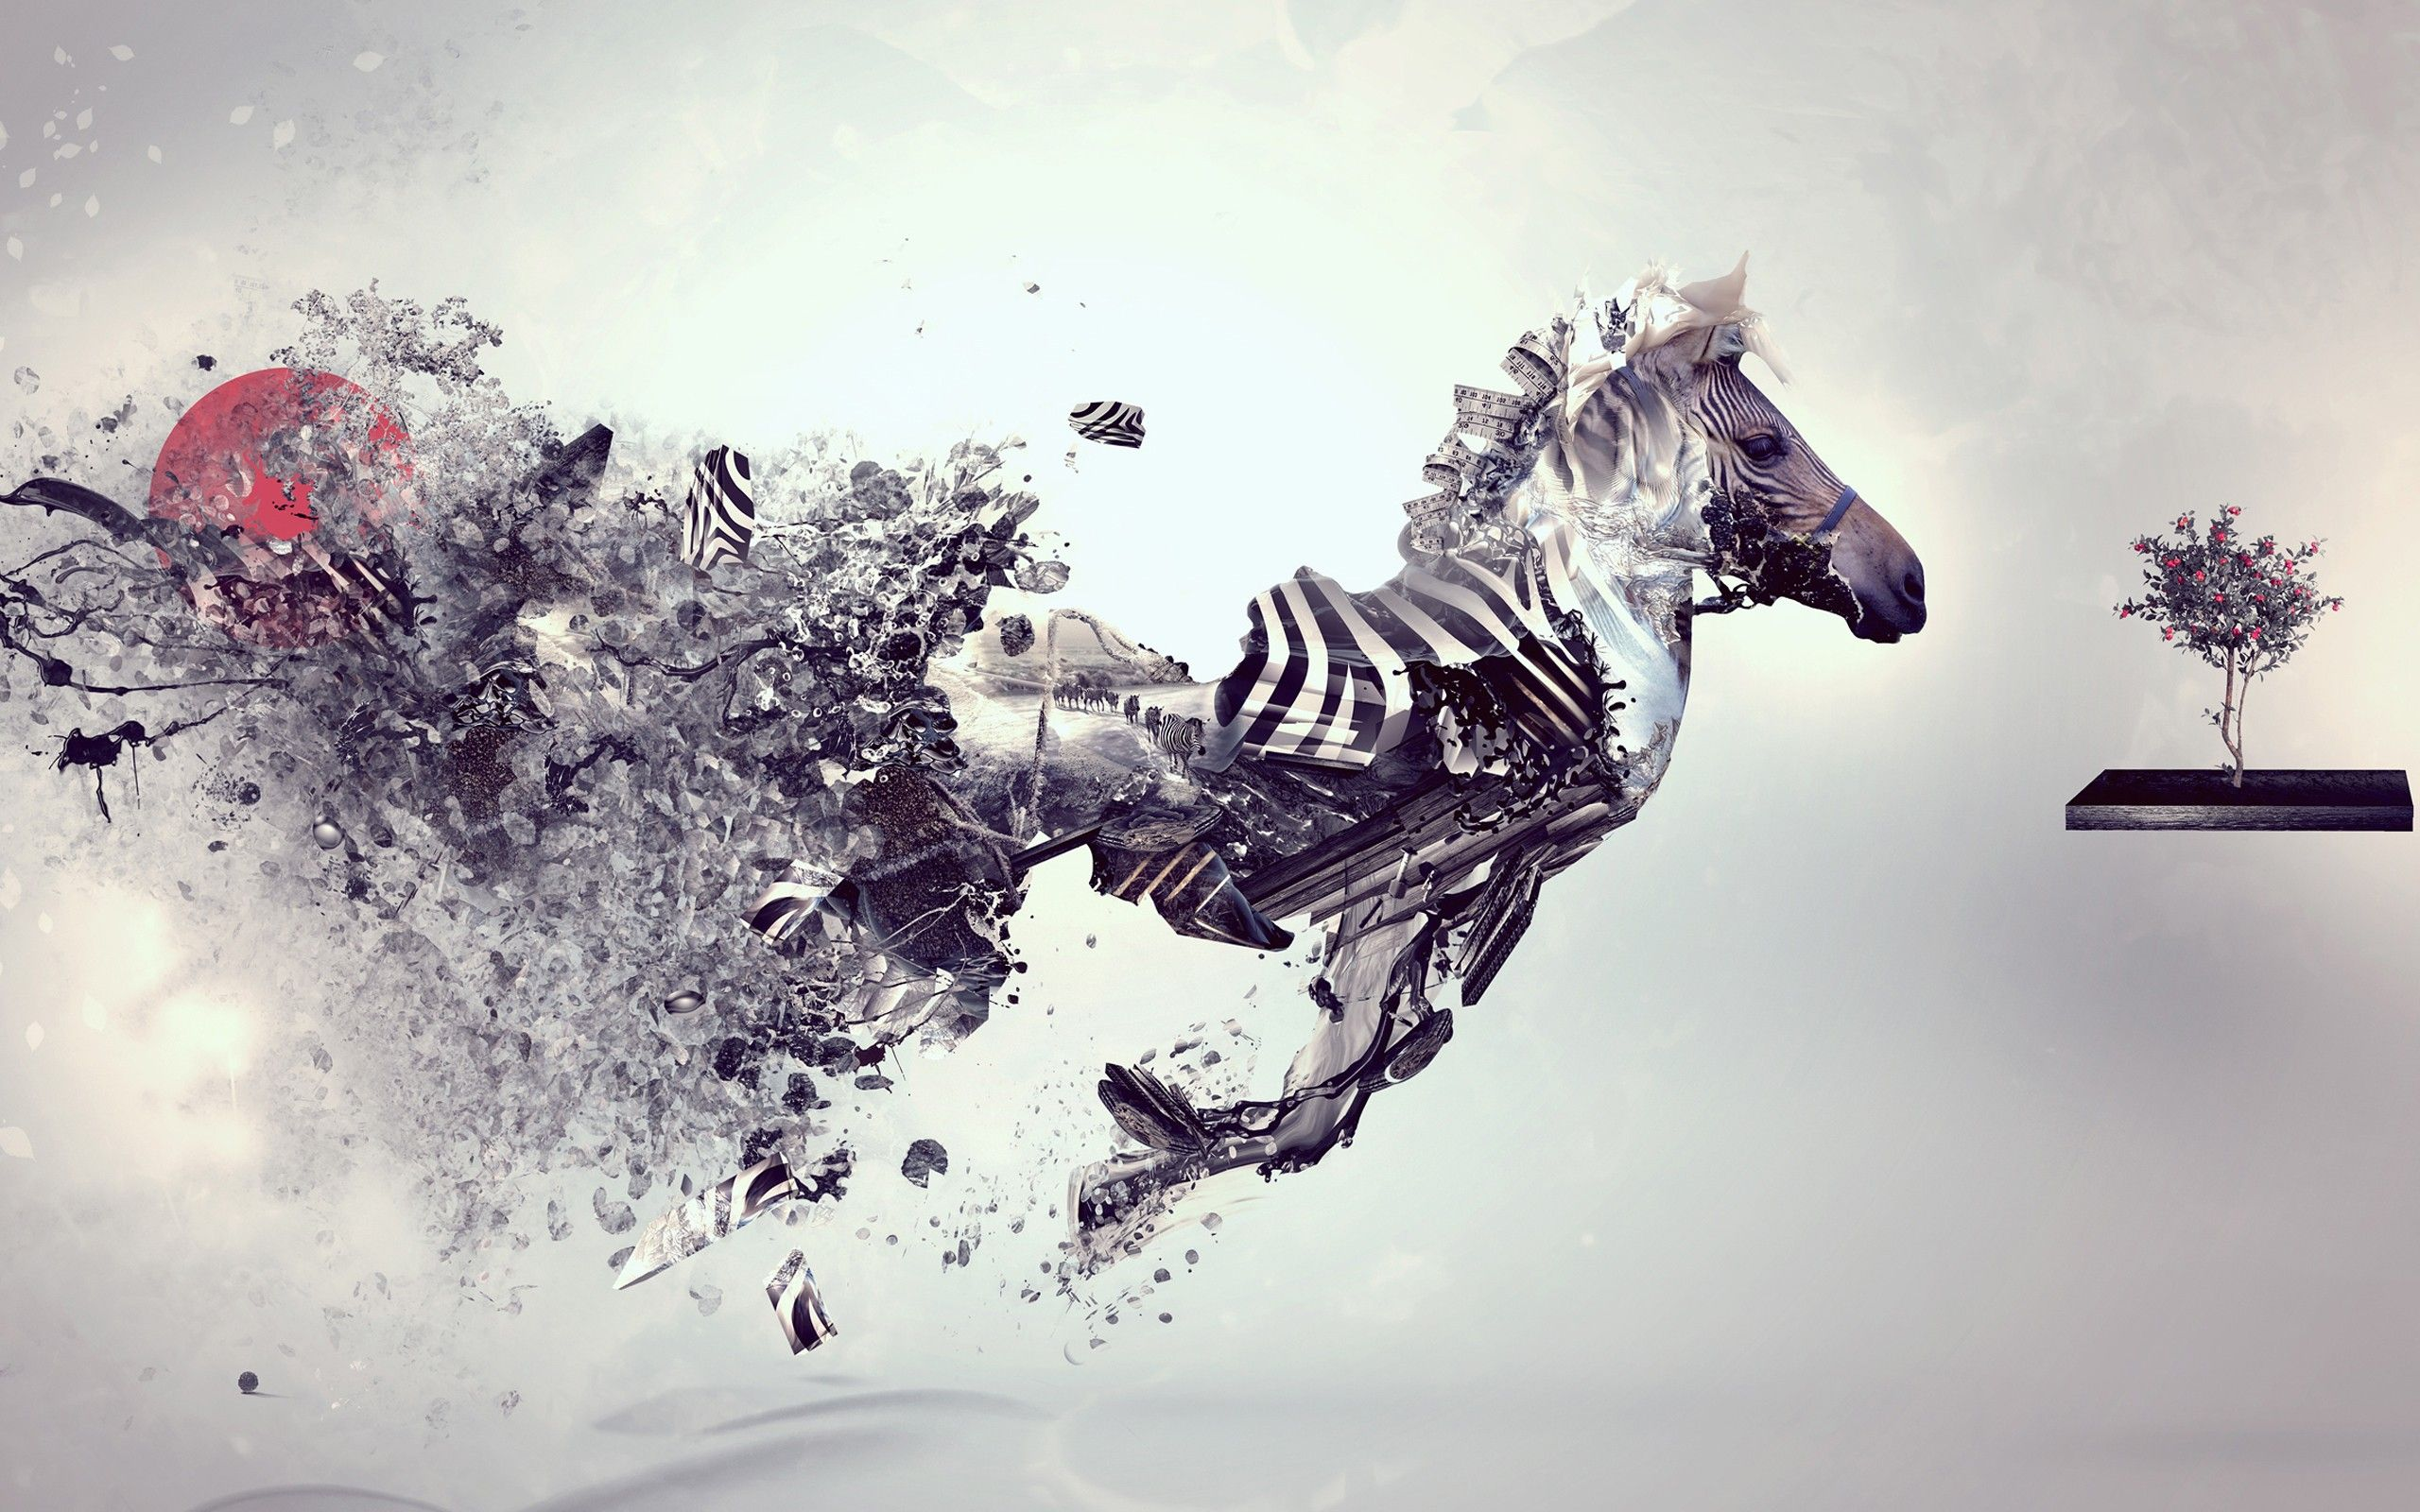 Creative Wallpapers For Laptop Group (86+)